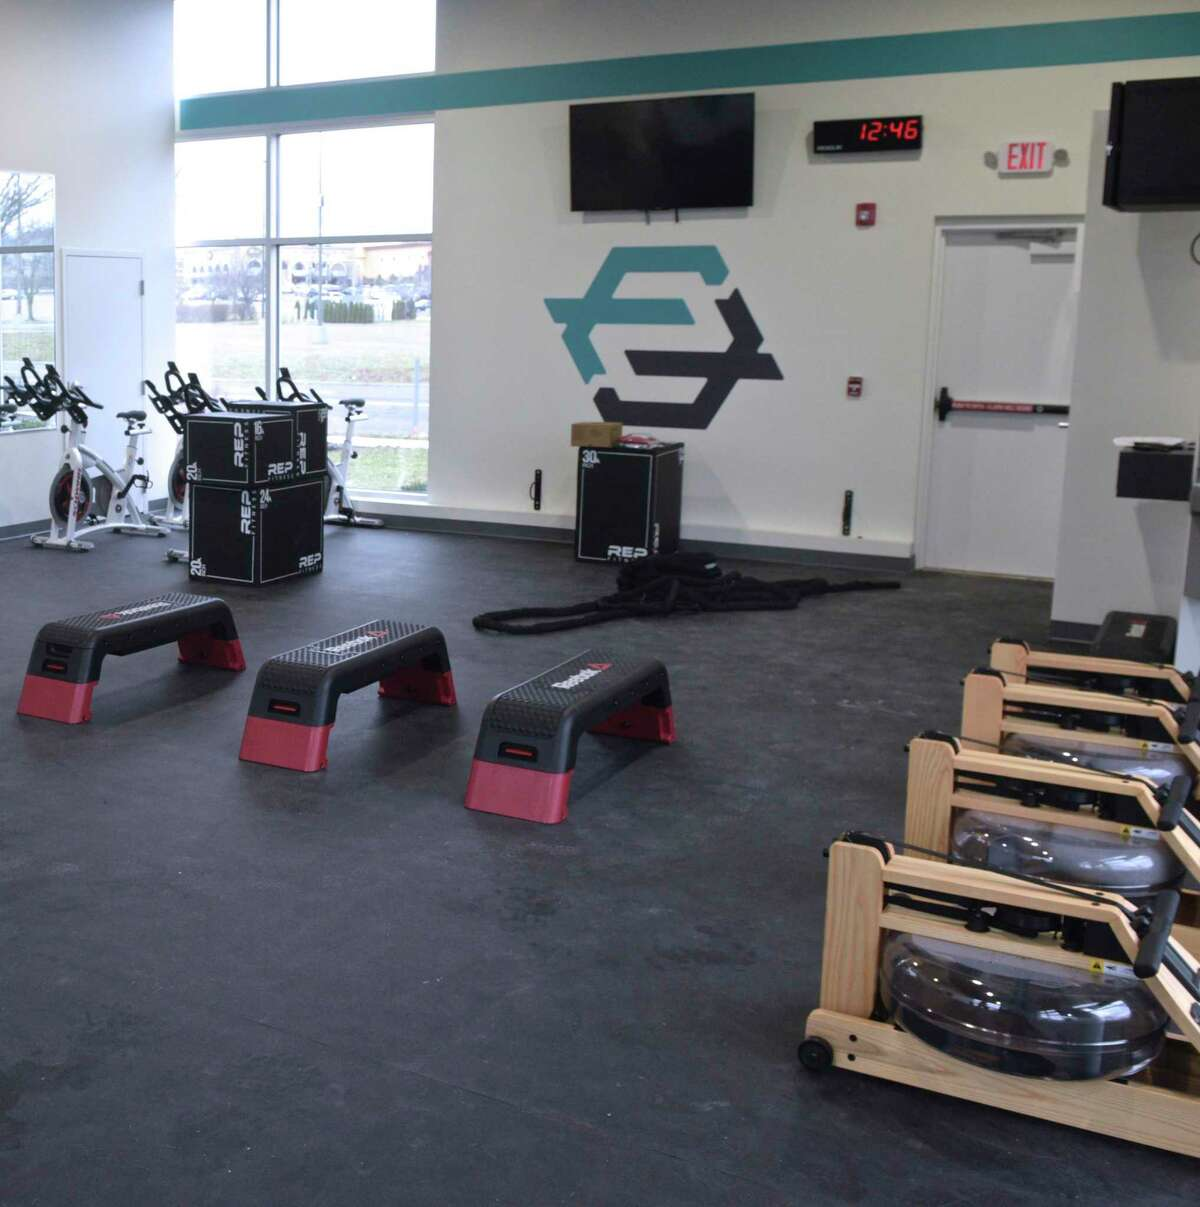 FluxFit a new fitness gym opening Saturday in Danbury, Conn. Friday, March 6, 2020.